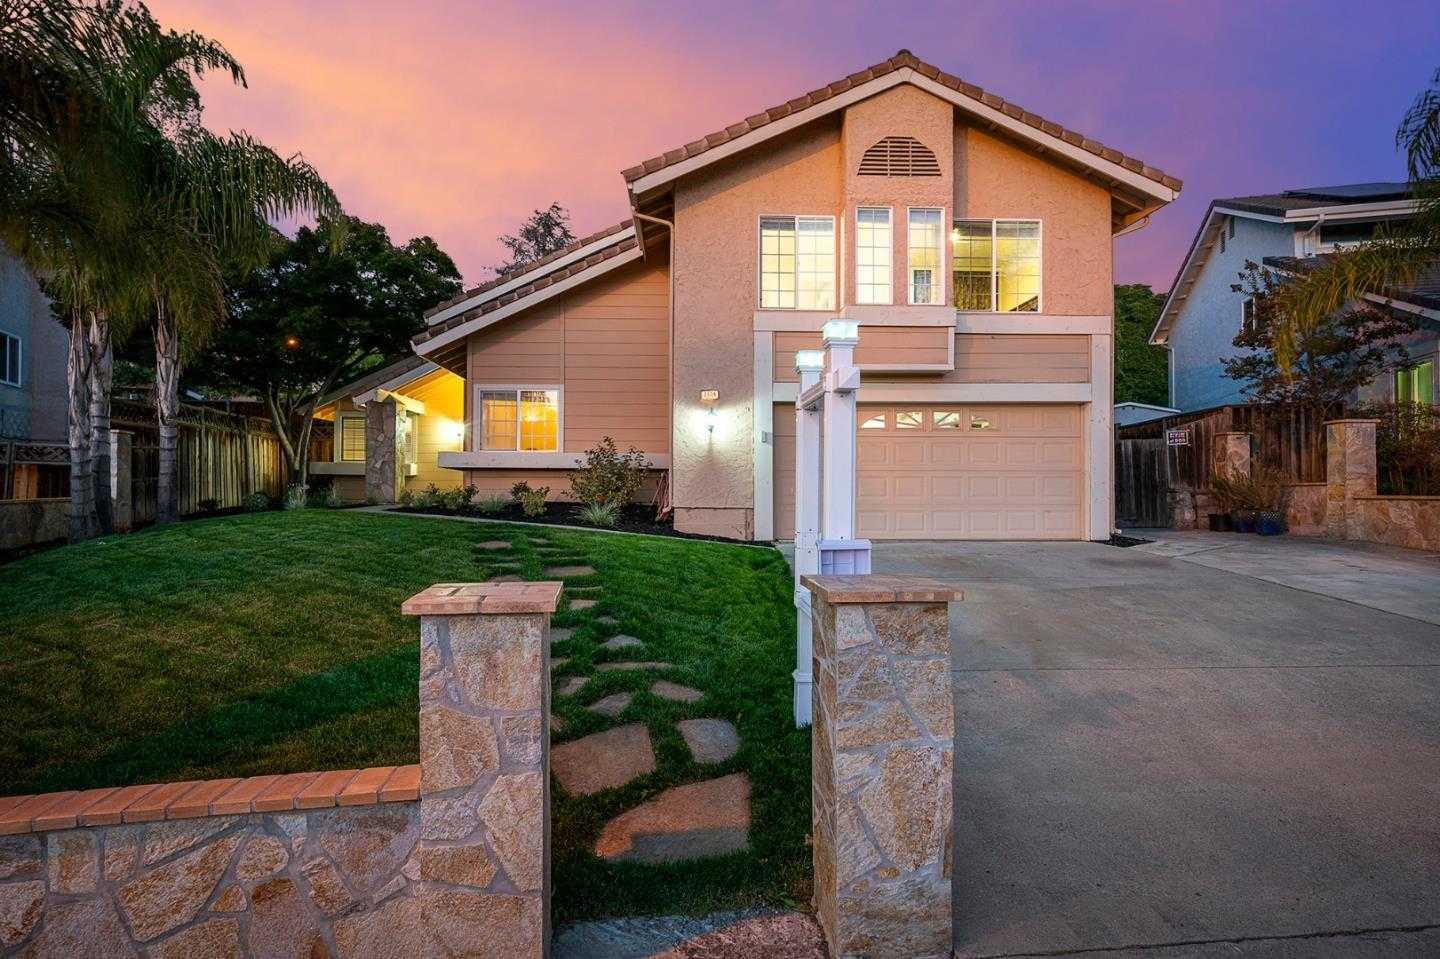 $1,188,800 - 4Br/3Ba -  for Sale in San Jose